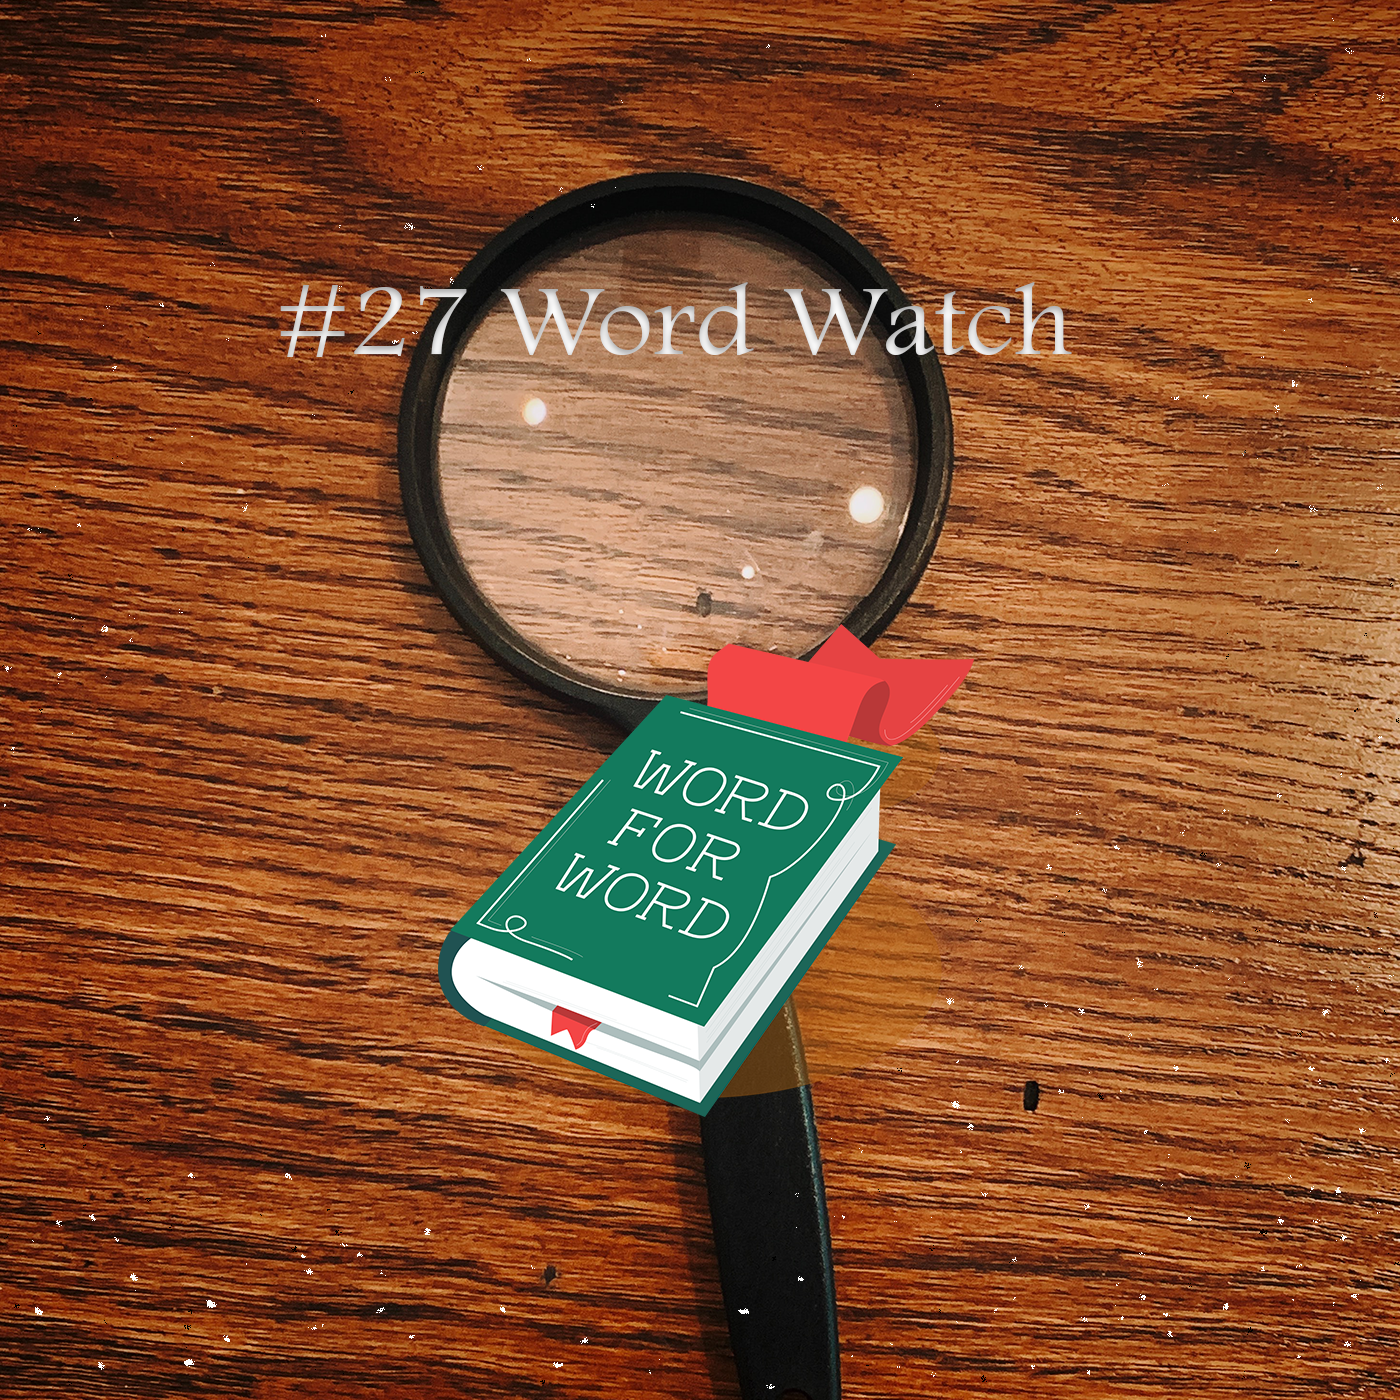 Image of magnifying glass and text: #27 Word Watch